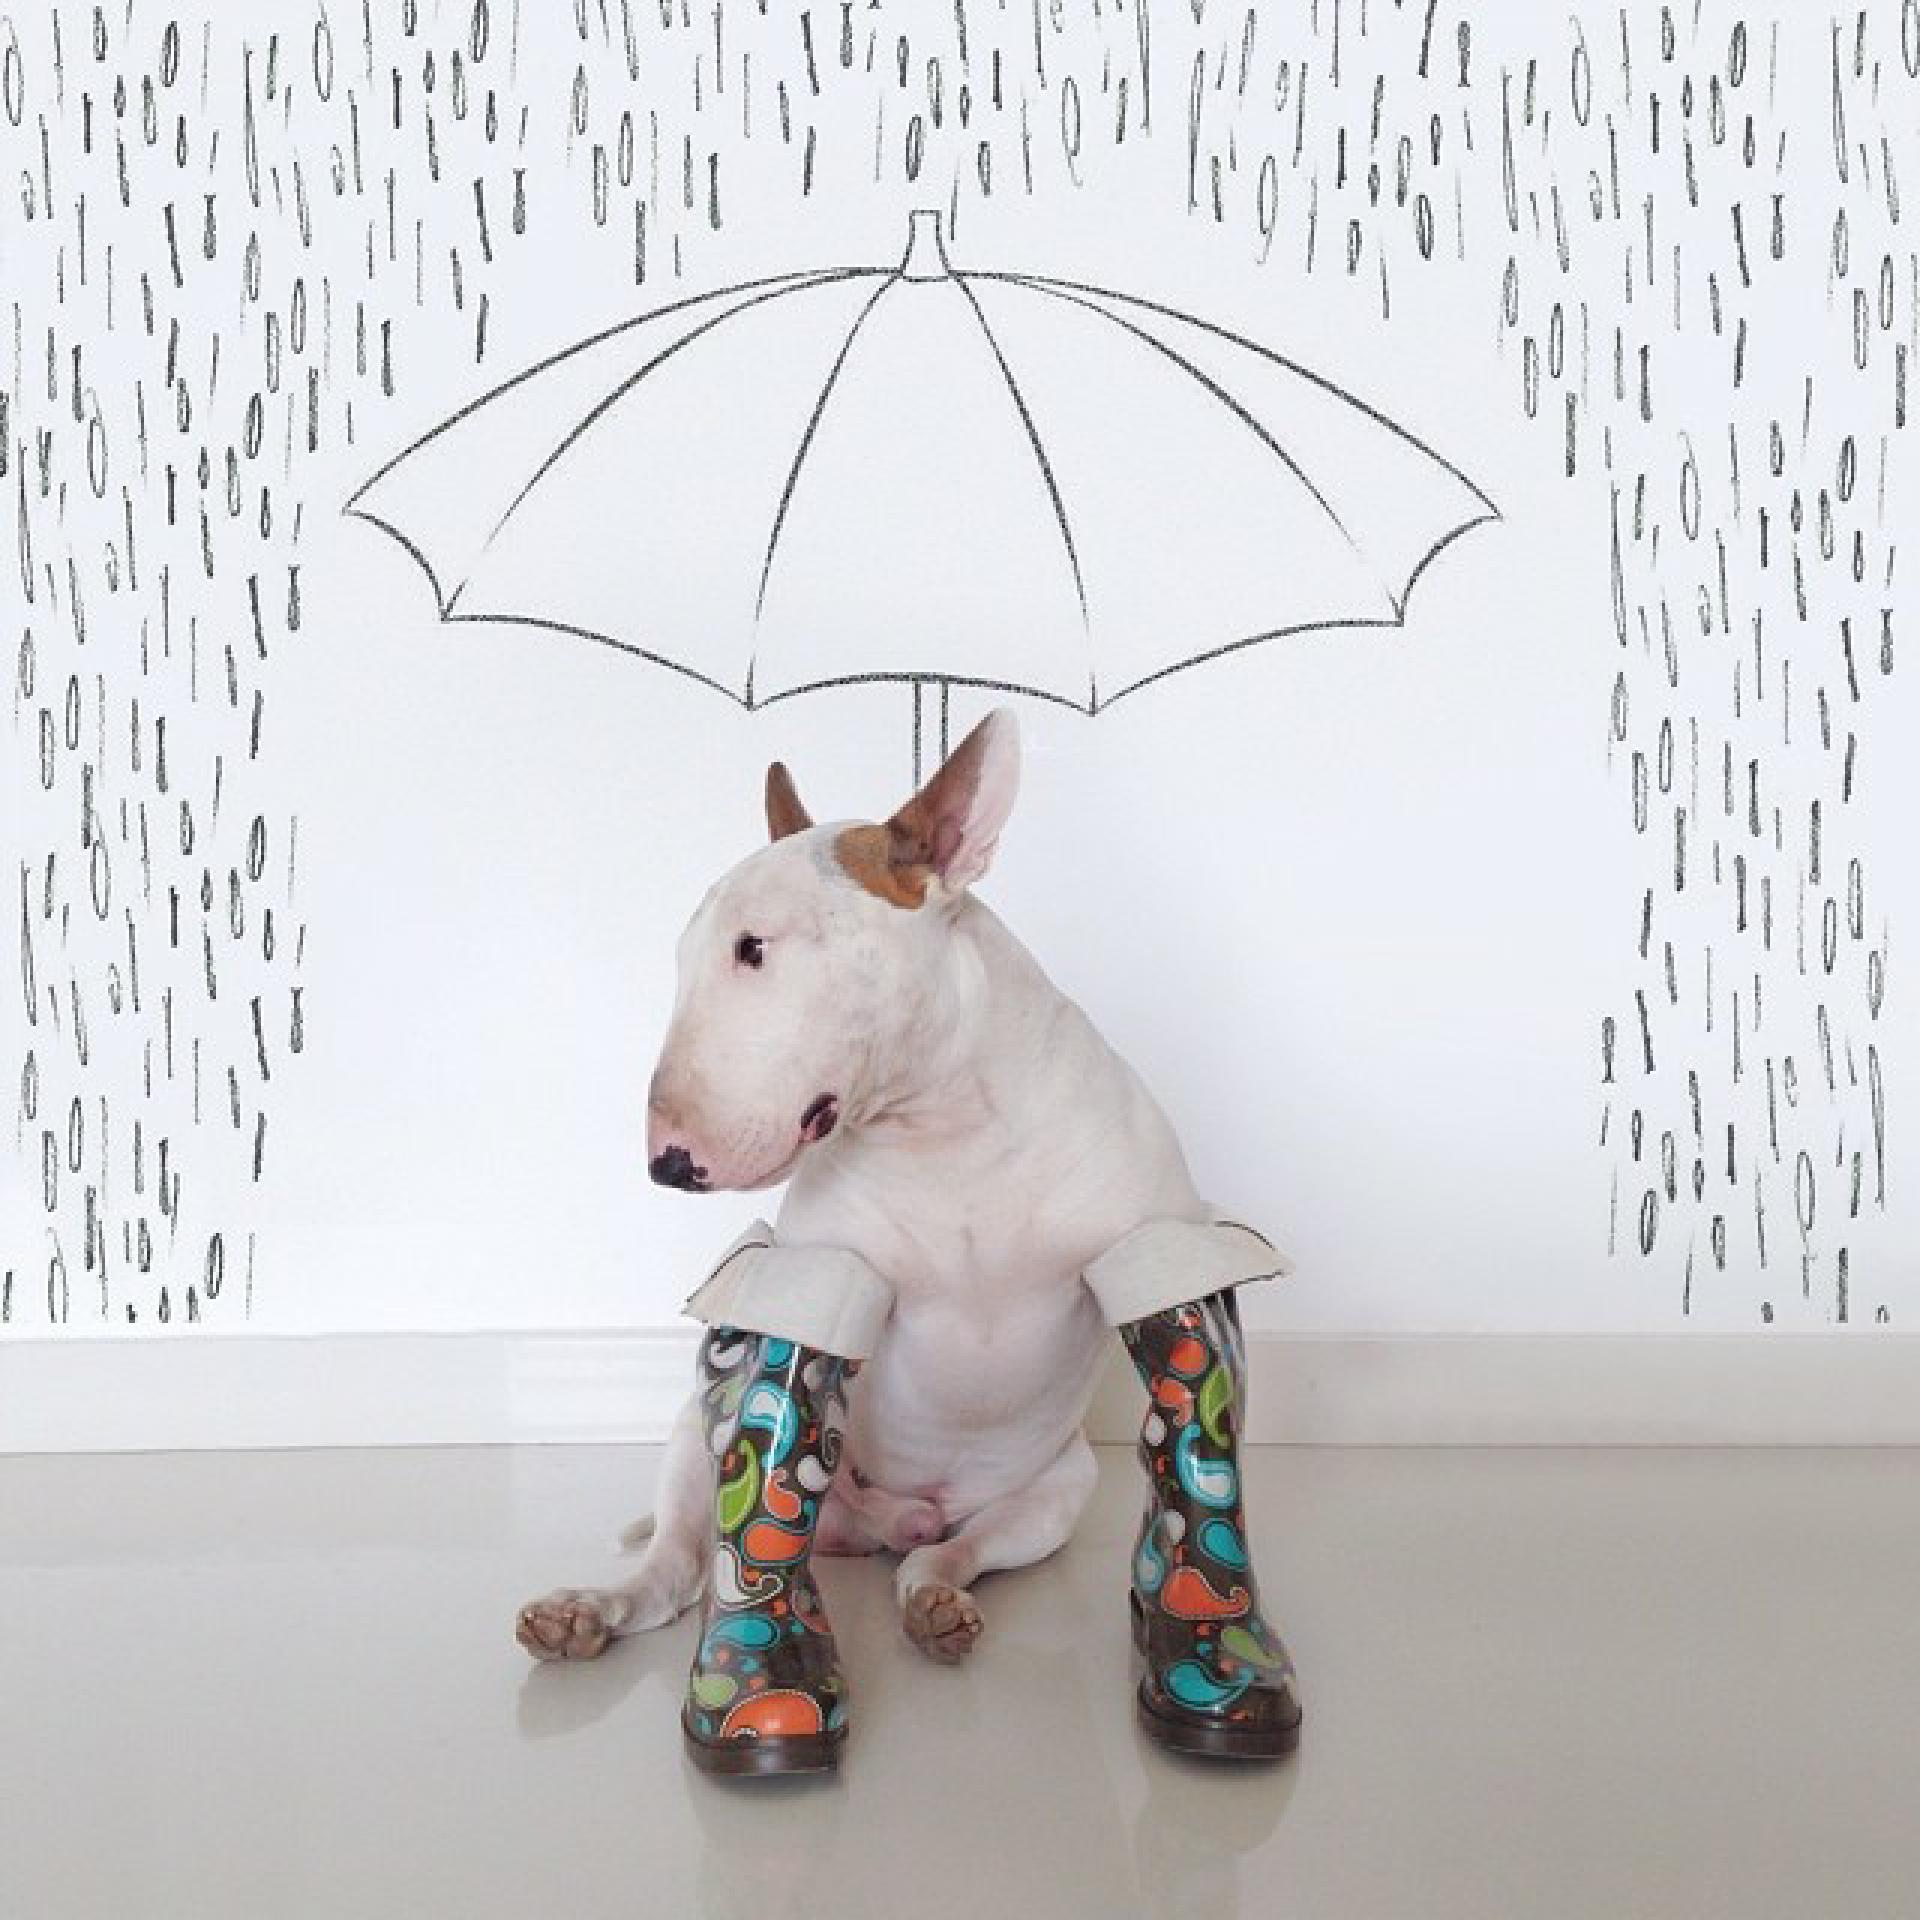 jimmy-choo-bull-terrier-illustrations-rafael-mantesso-10